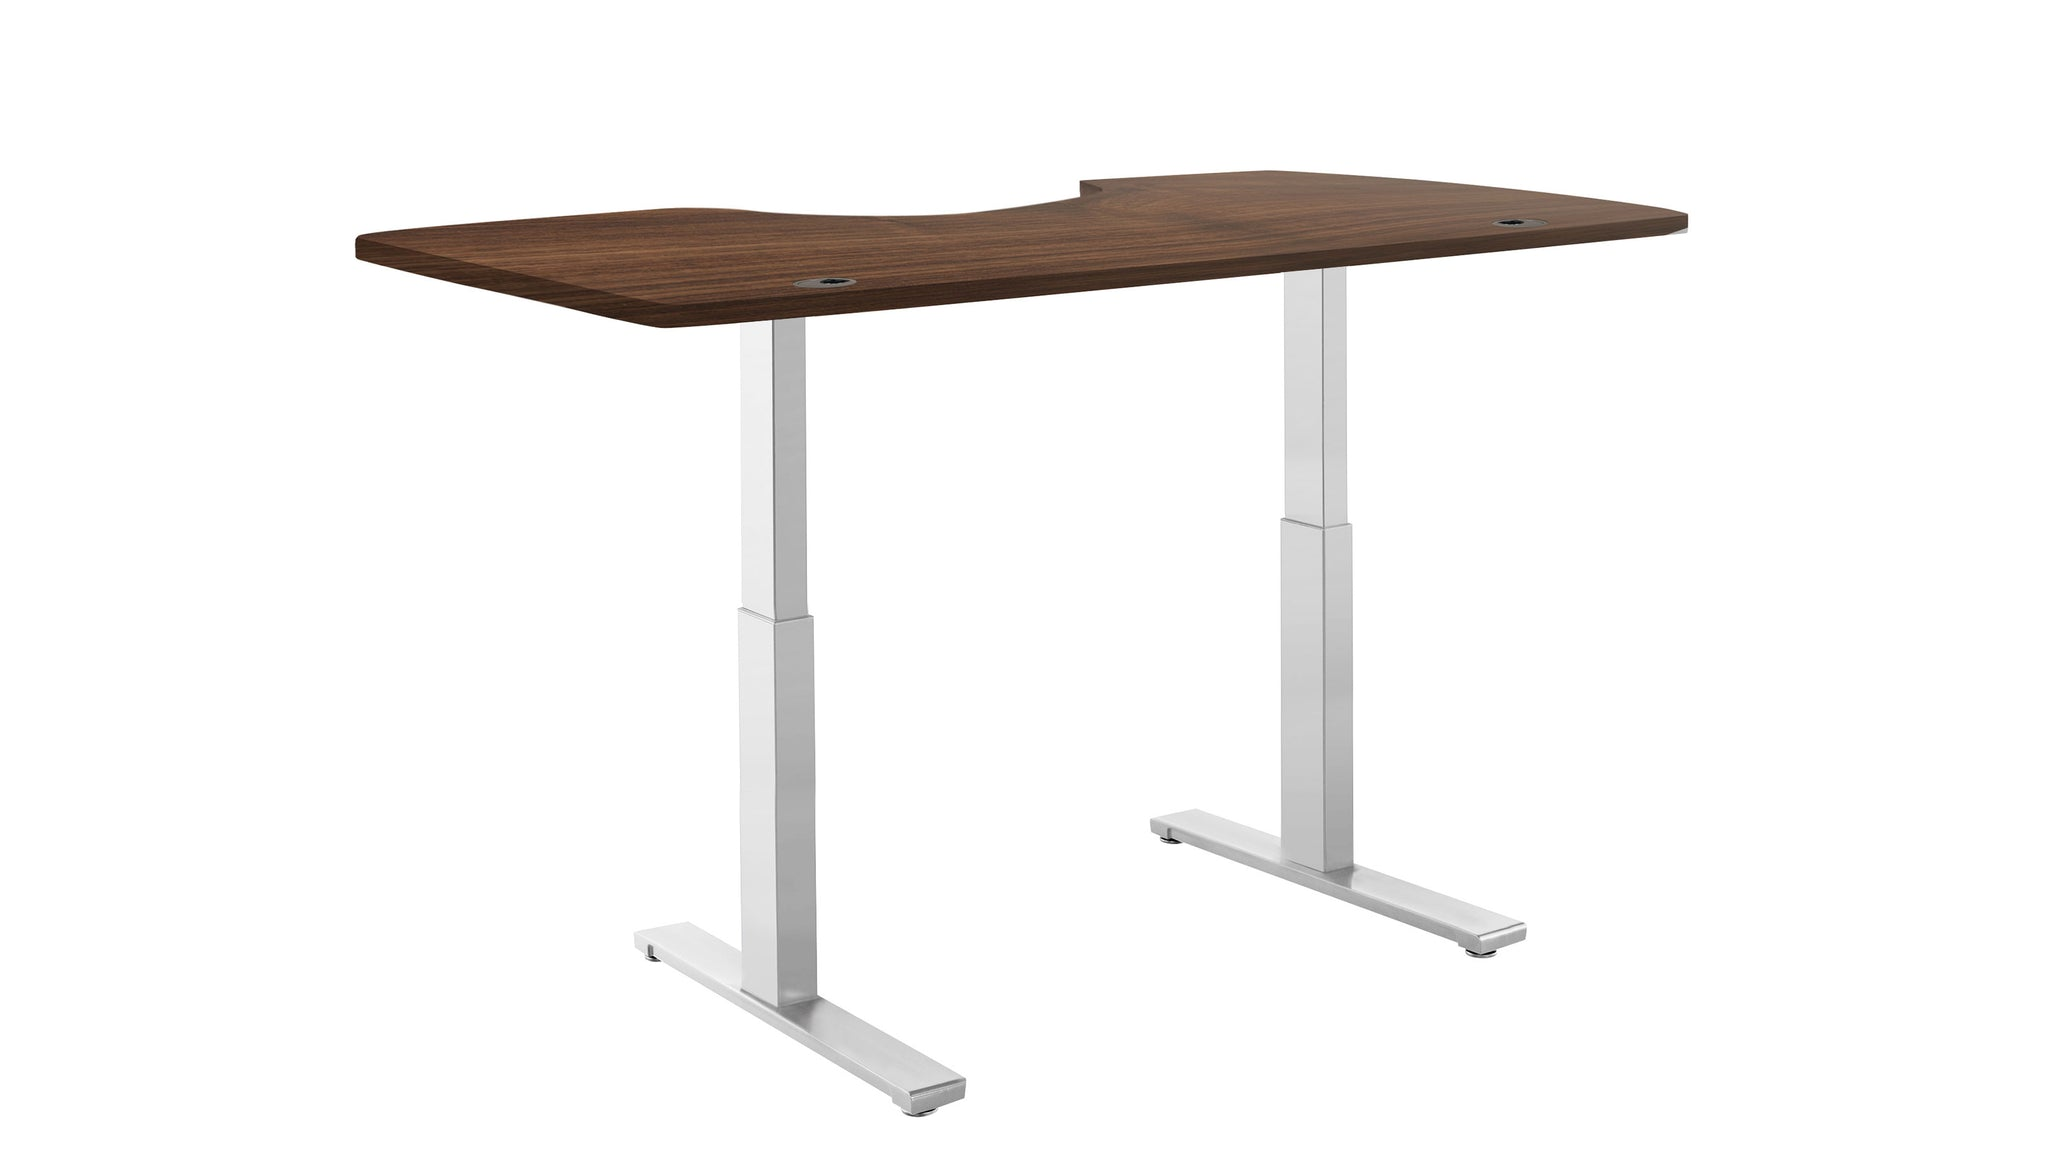 "ActiveDesk Standing Desk with Electric Adjustble Height 28 - 46 inches, Grey Frame - Walnut Ergo Table Top size 53"" x 30"""